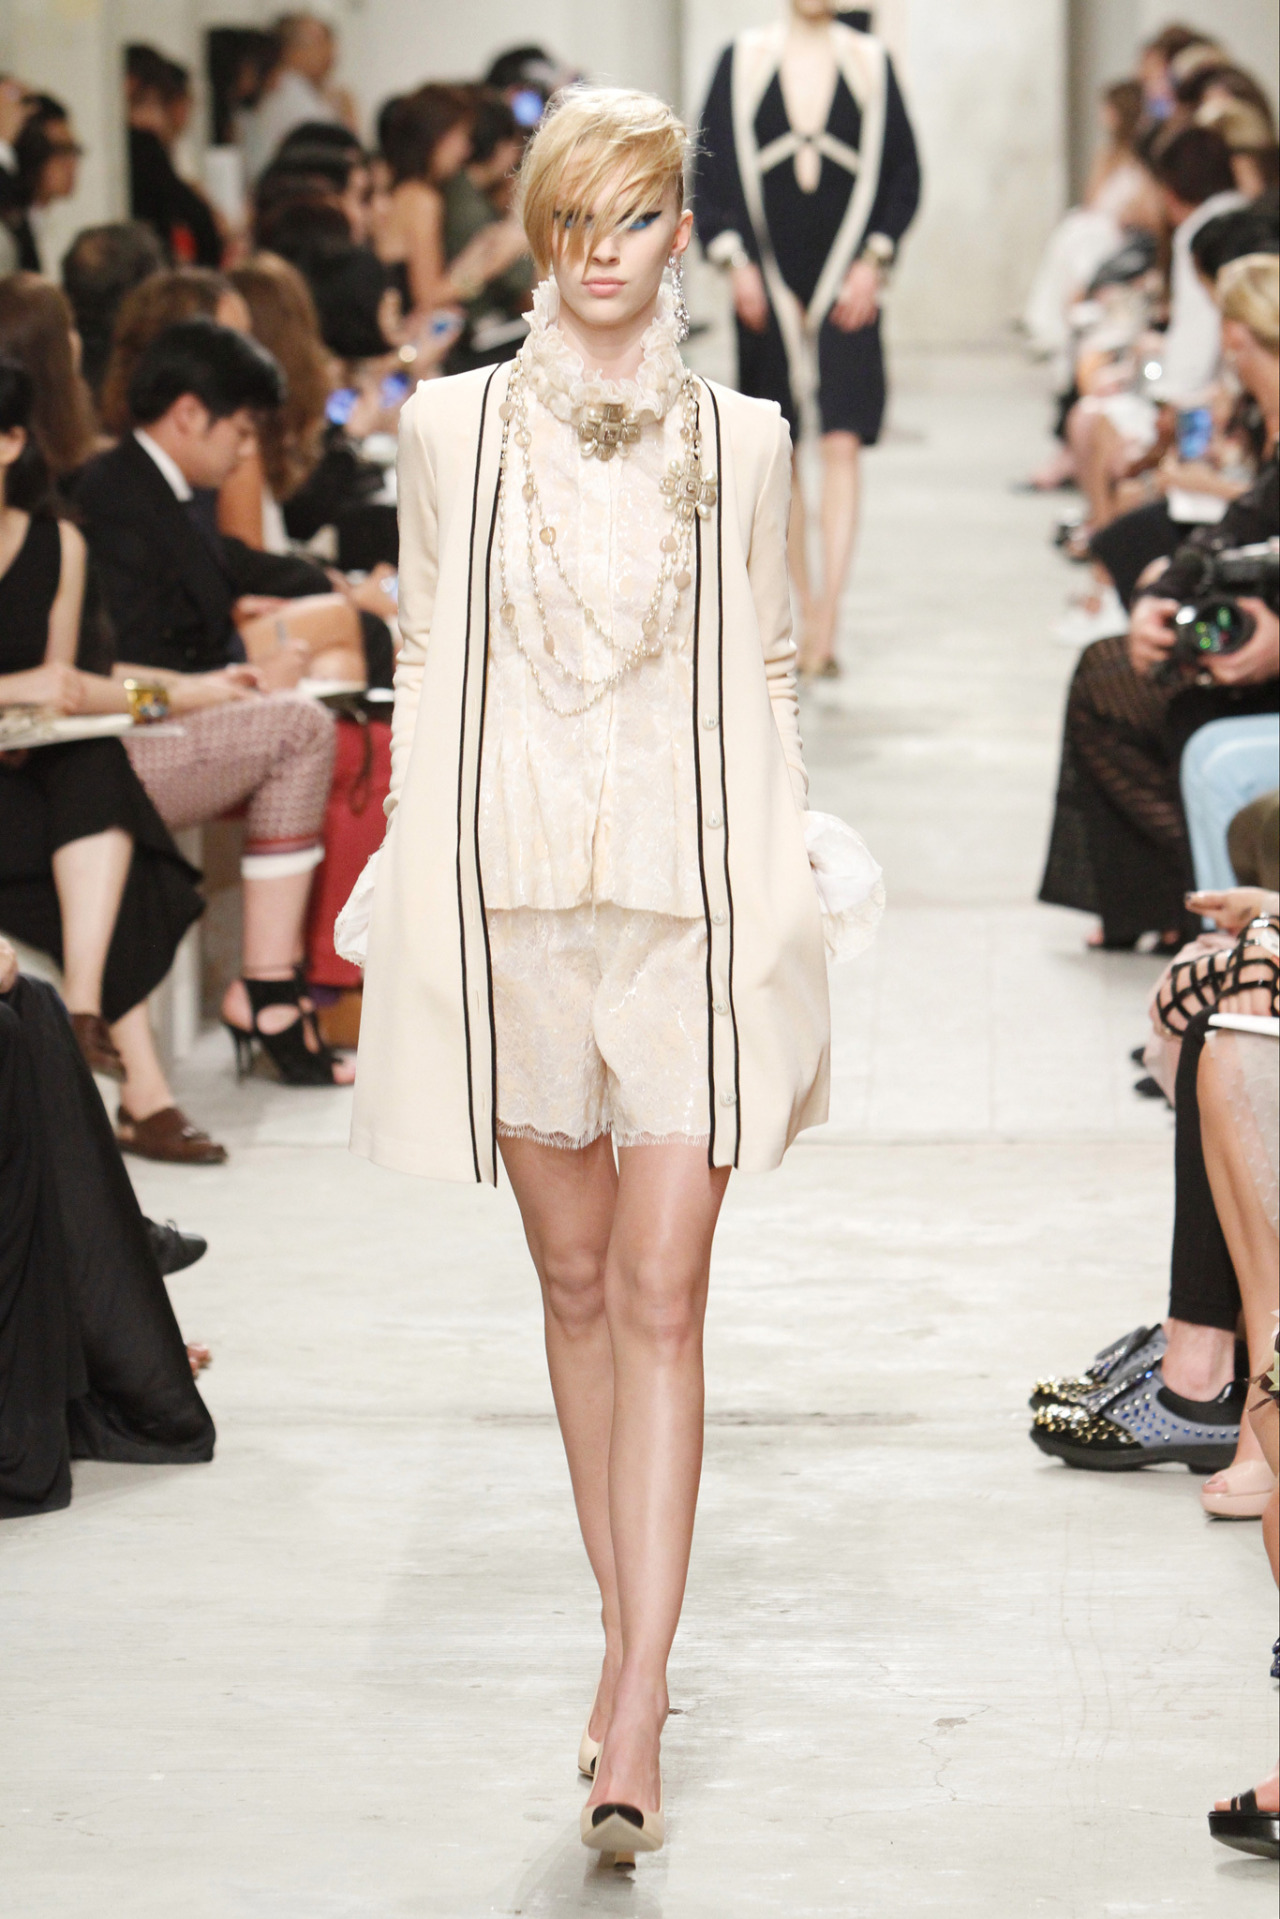 vogueweekend:  Juliana Schurig at Chanel Resort 2014, Singapore